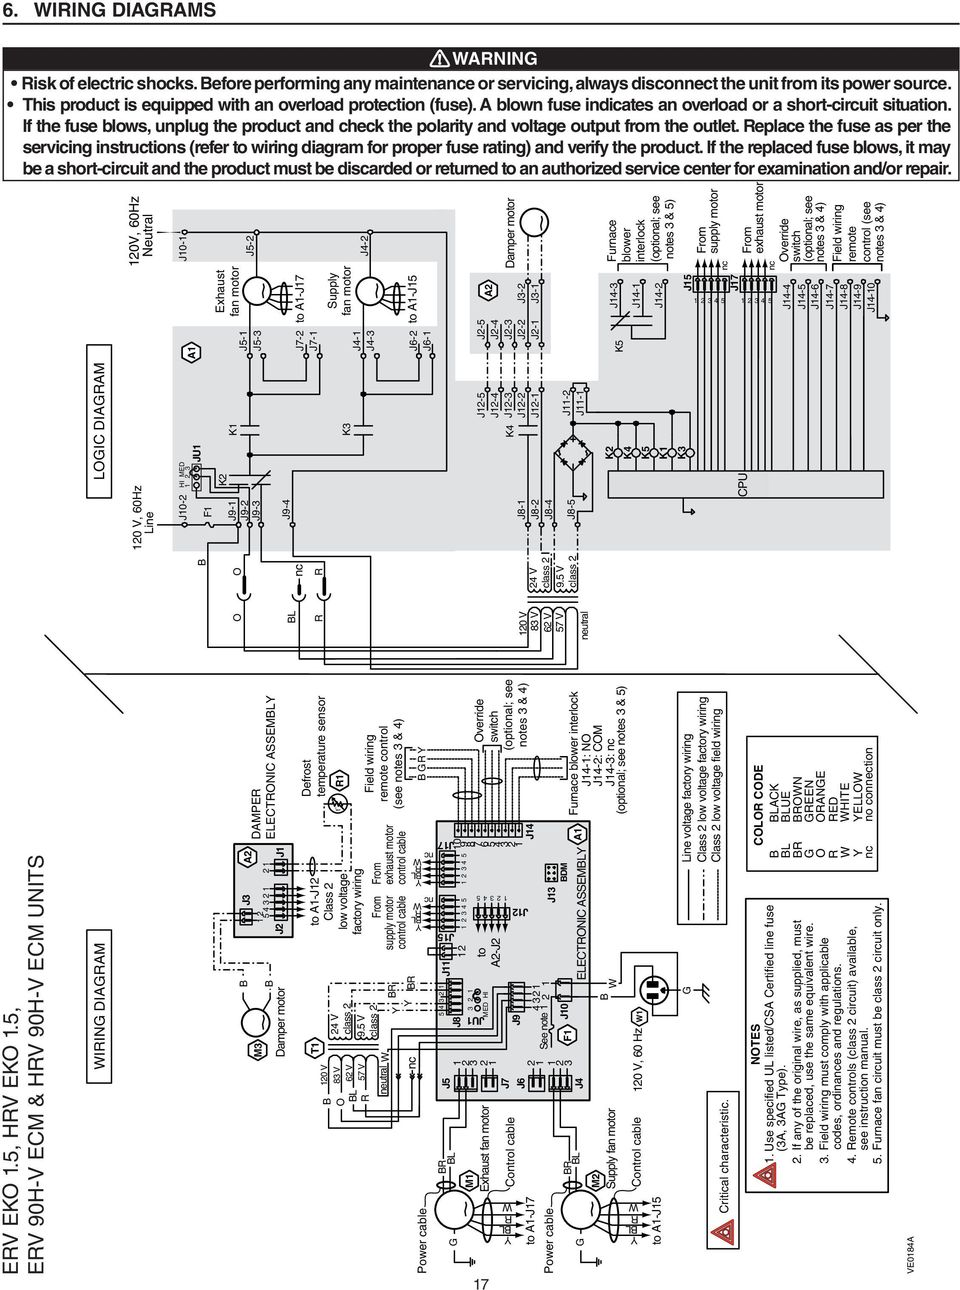 Installation Guide Vnee Venmar Avs Erv Eko 15 90h V Ecm Hrv 6 Wire Outlet Diagram If The Fuse Blows Unplug Product And Check Polarity Voltage Output From 18 Wiring Diagrams